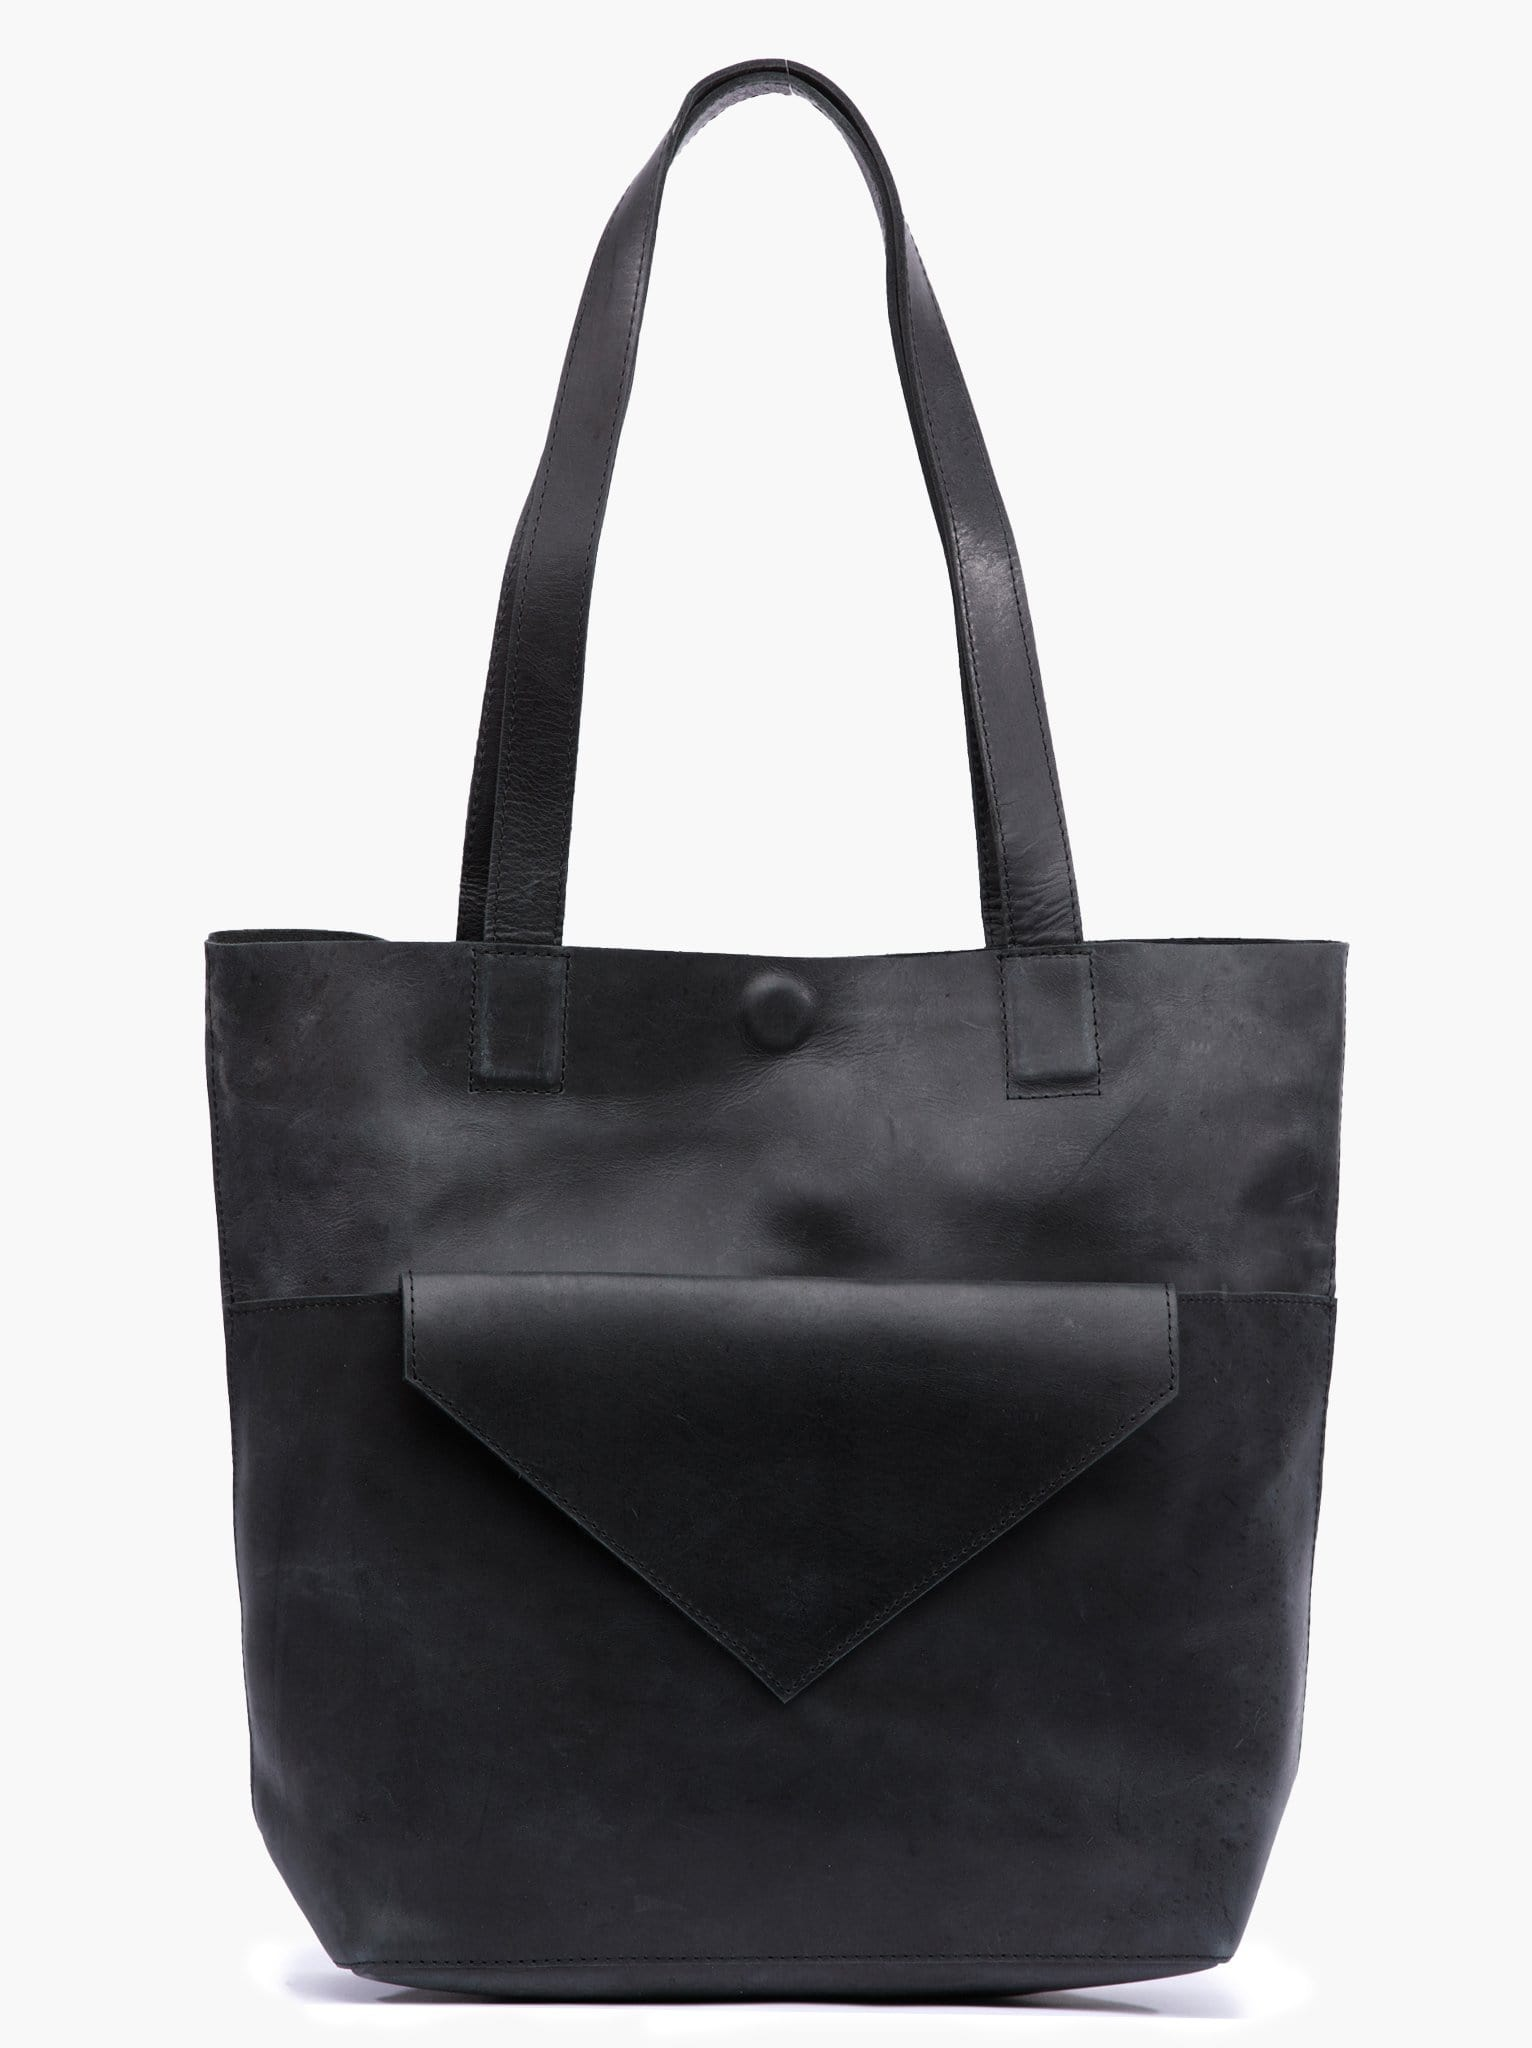 Ginger Threads Collections purse Black Leather Tote